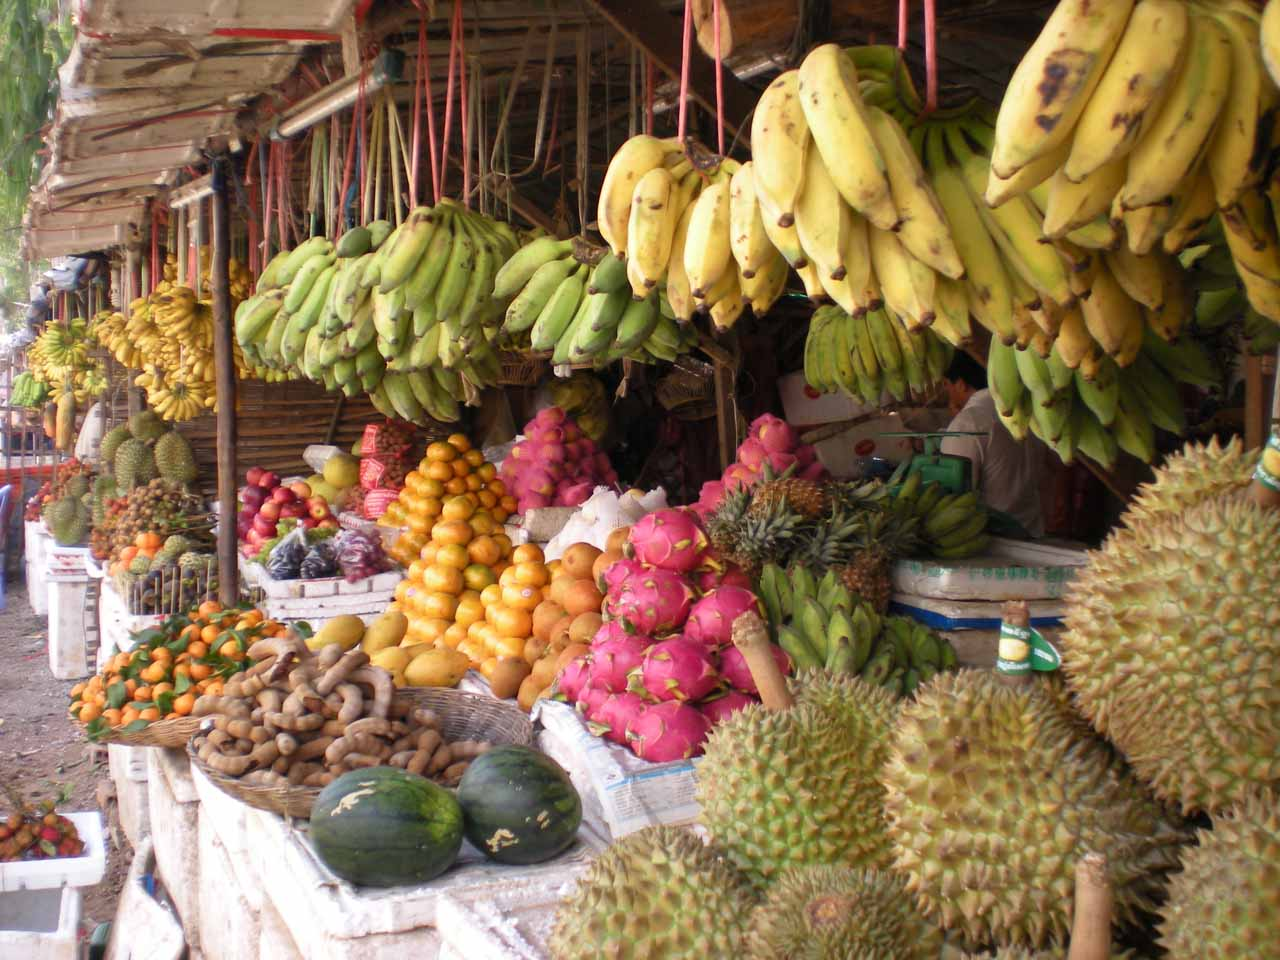 Fruit stand in Siem Reap